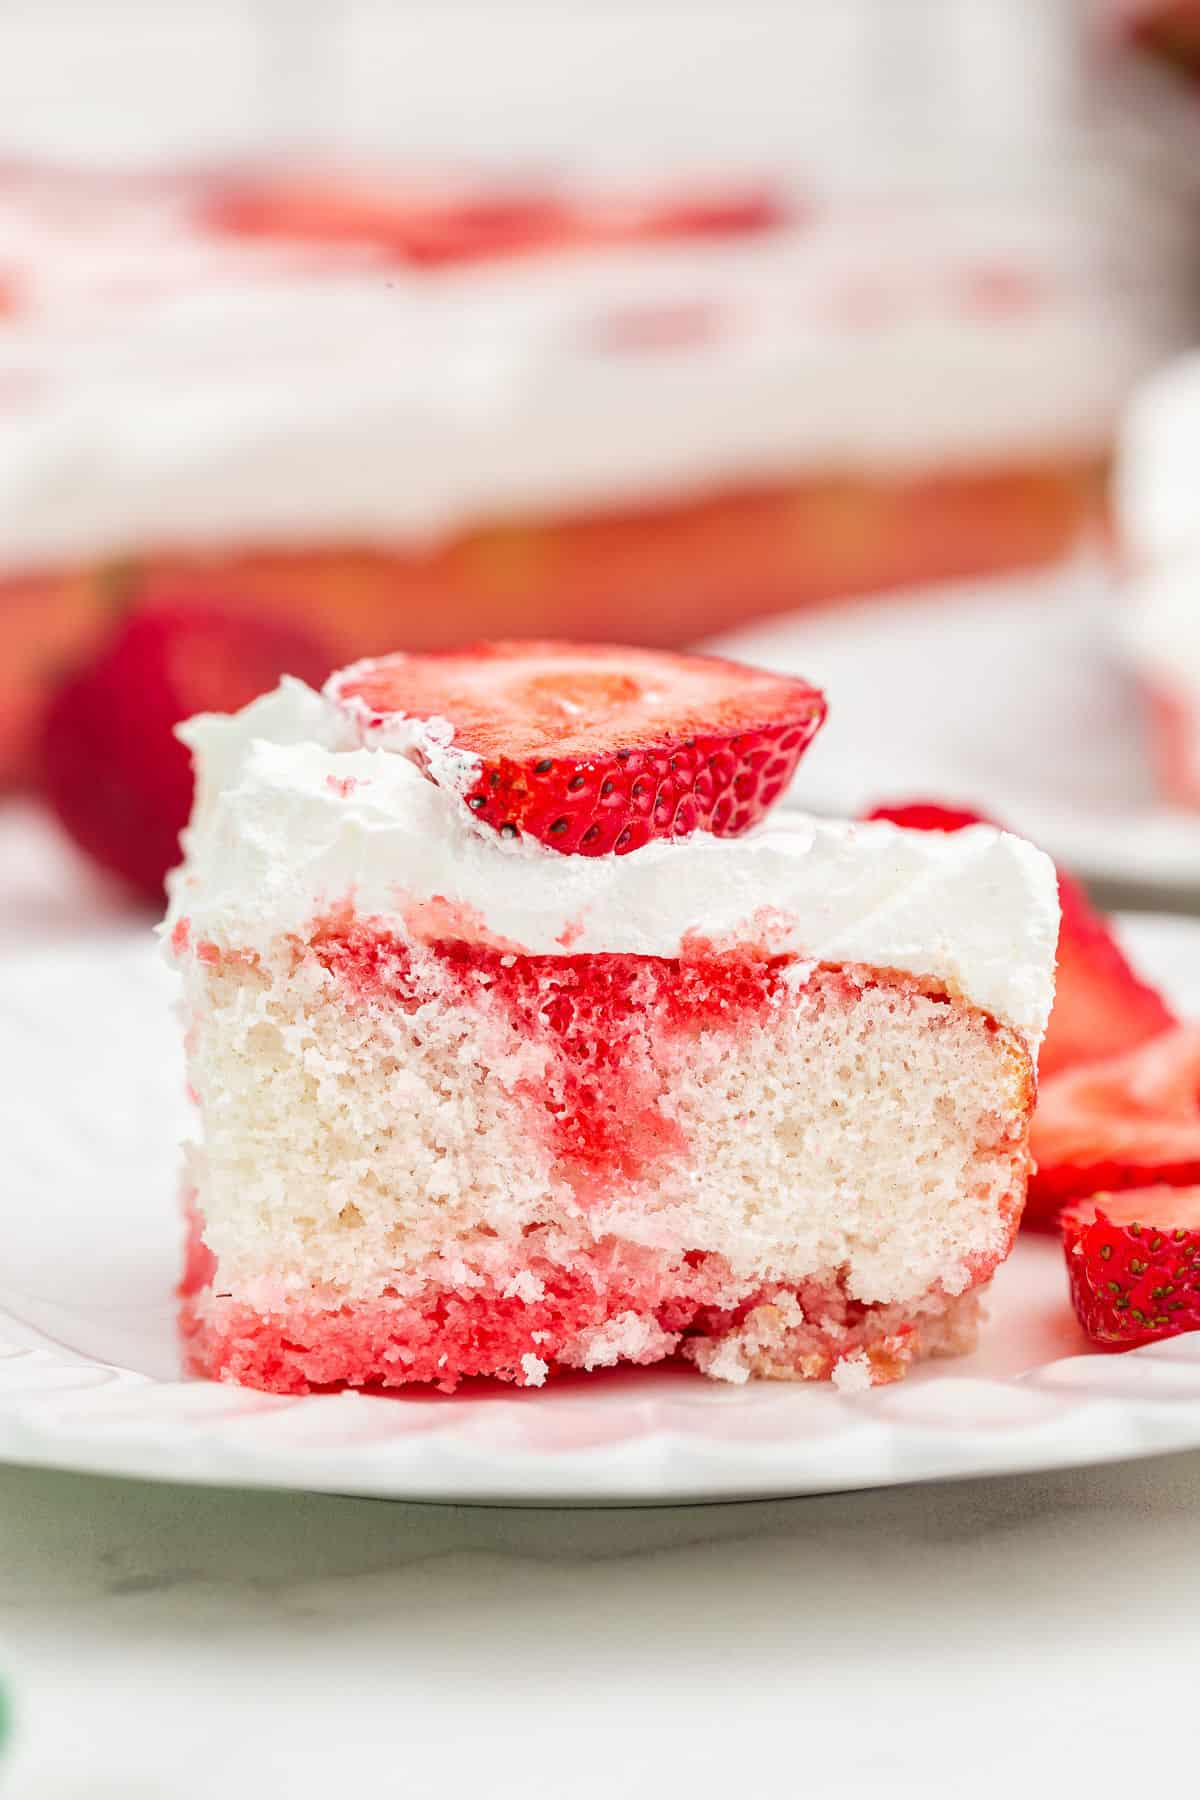 Slice of strawberry jello cake topped with whipped cream and fresh strawberries on a white plate.